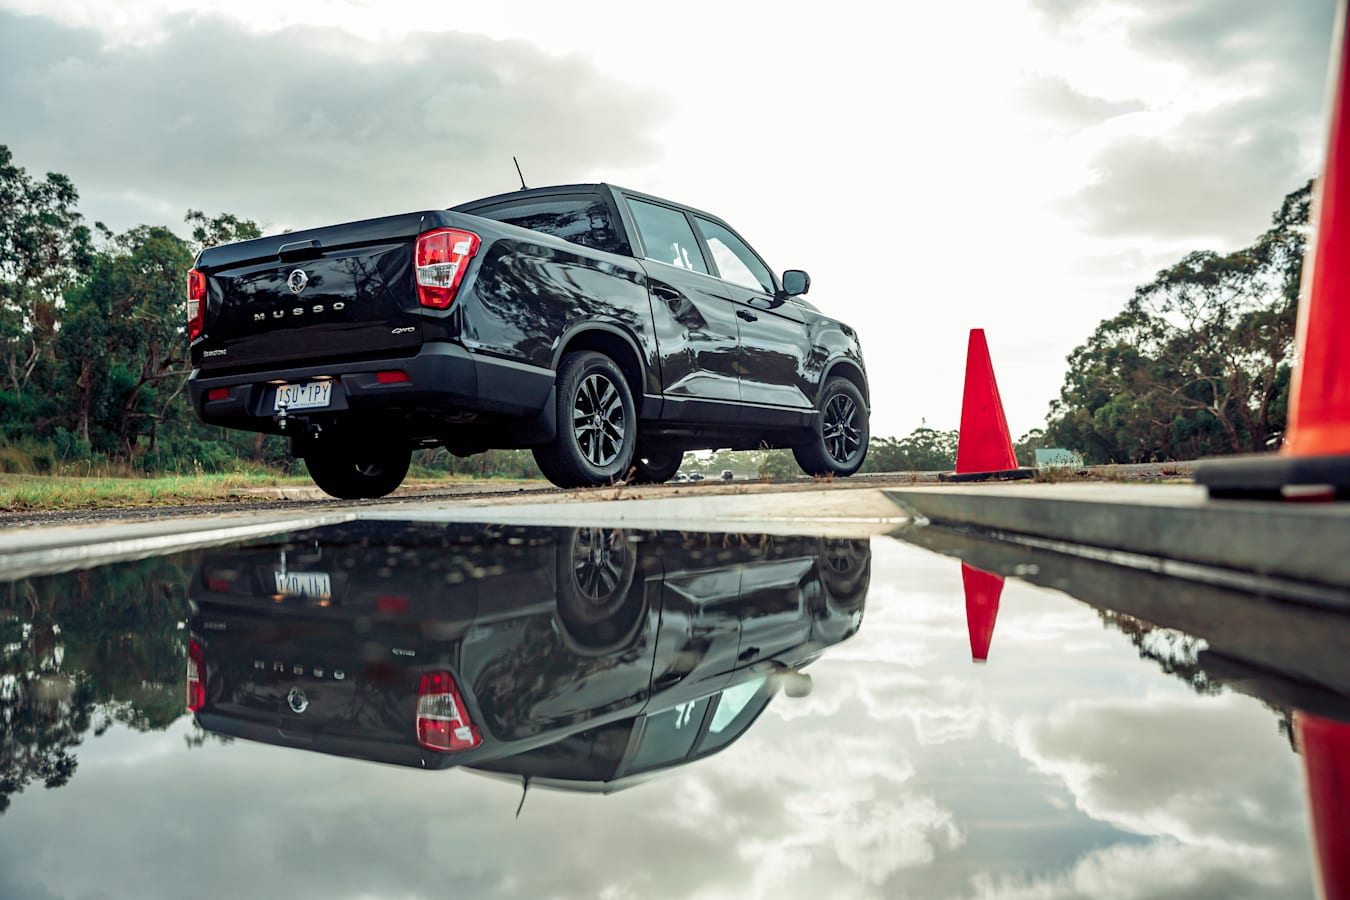 4 X 4 Australia Comparisons 2021 May 21 Ssang Yong Musso Unlimited XLV Rear